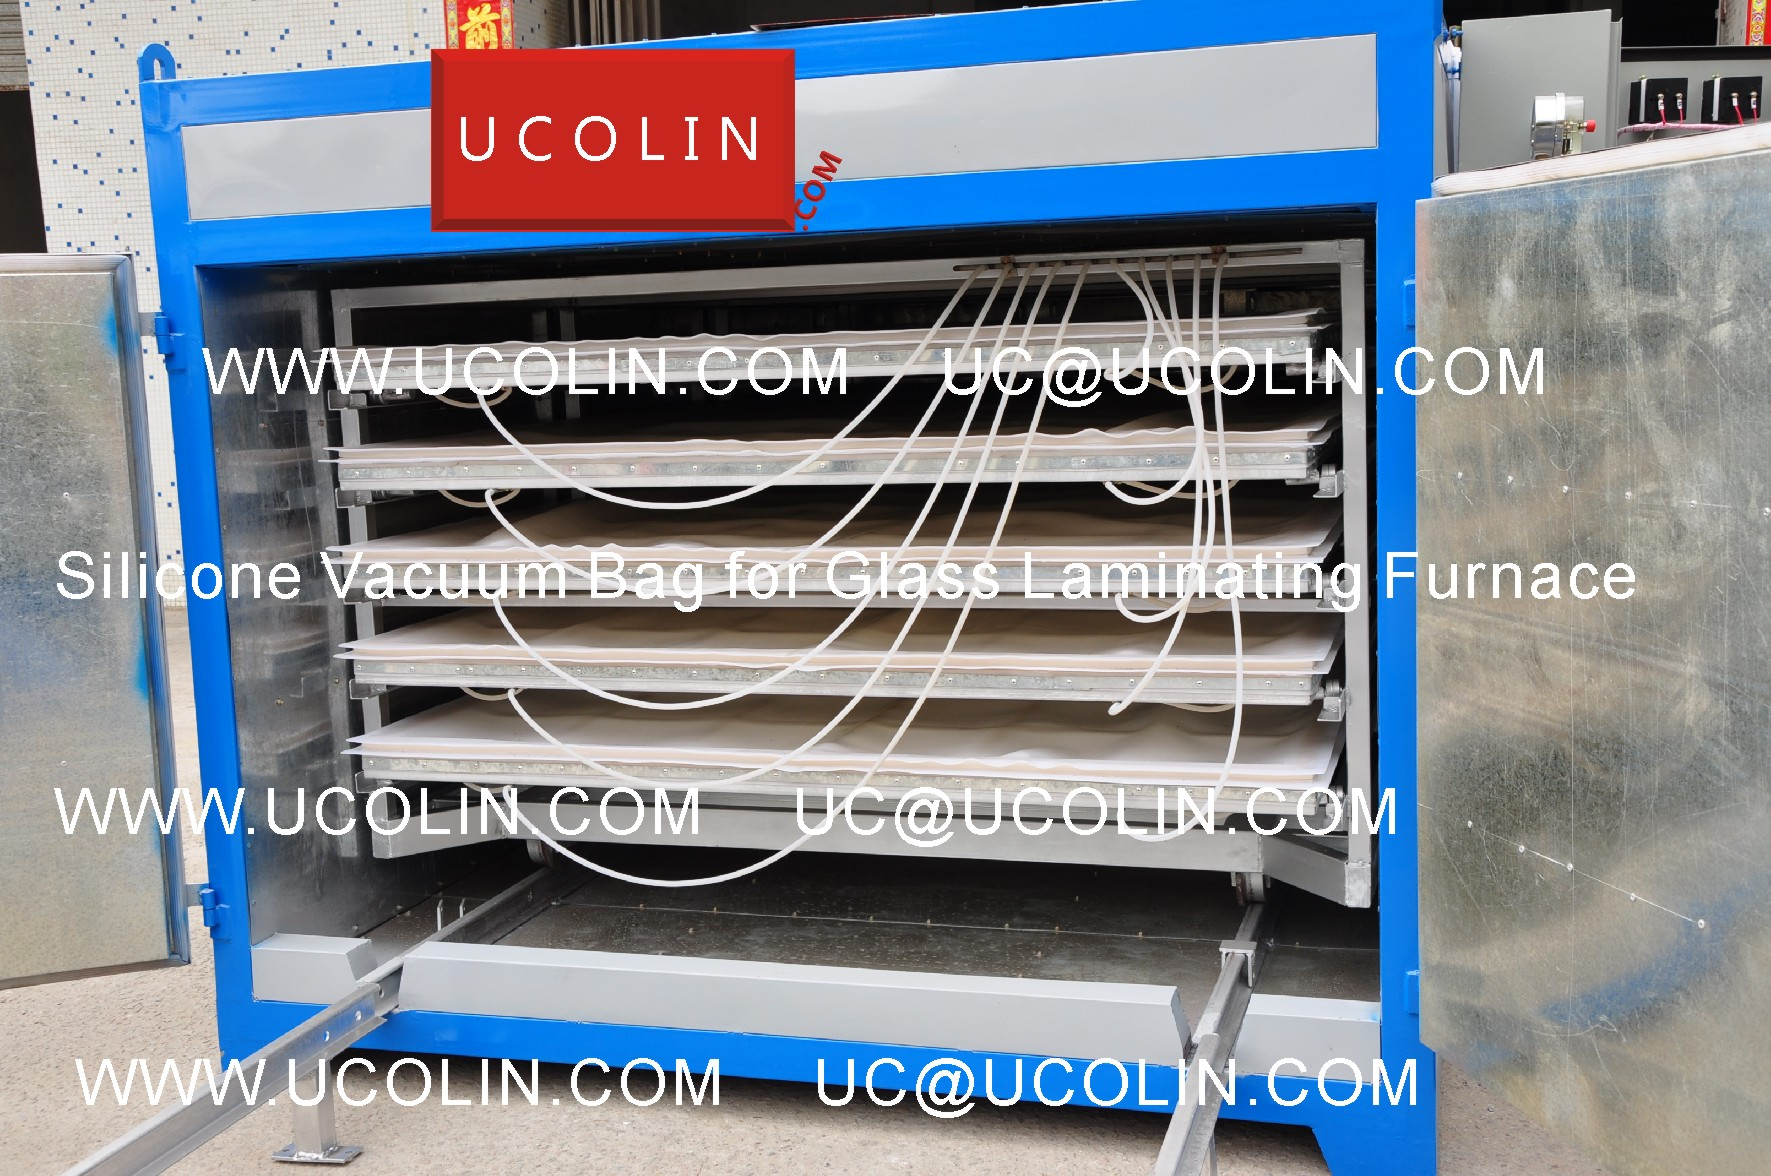 03 Application of Silicone Vacuum Bag for Glass Laminating Furnace